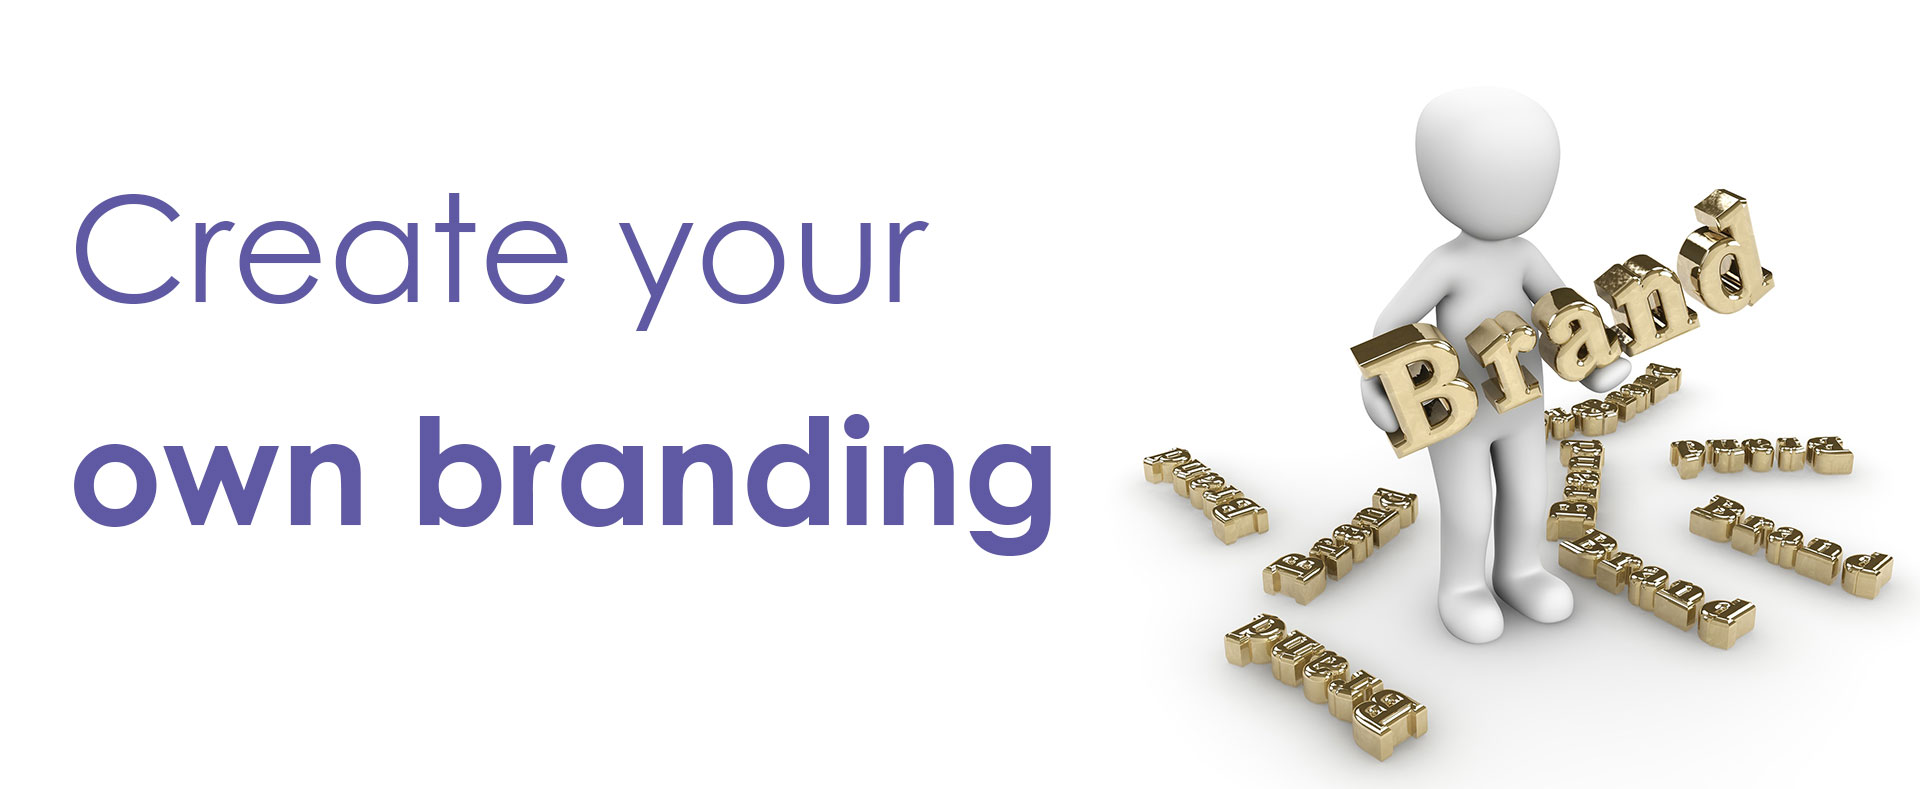 create-your-own-branding